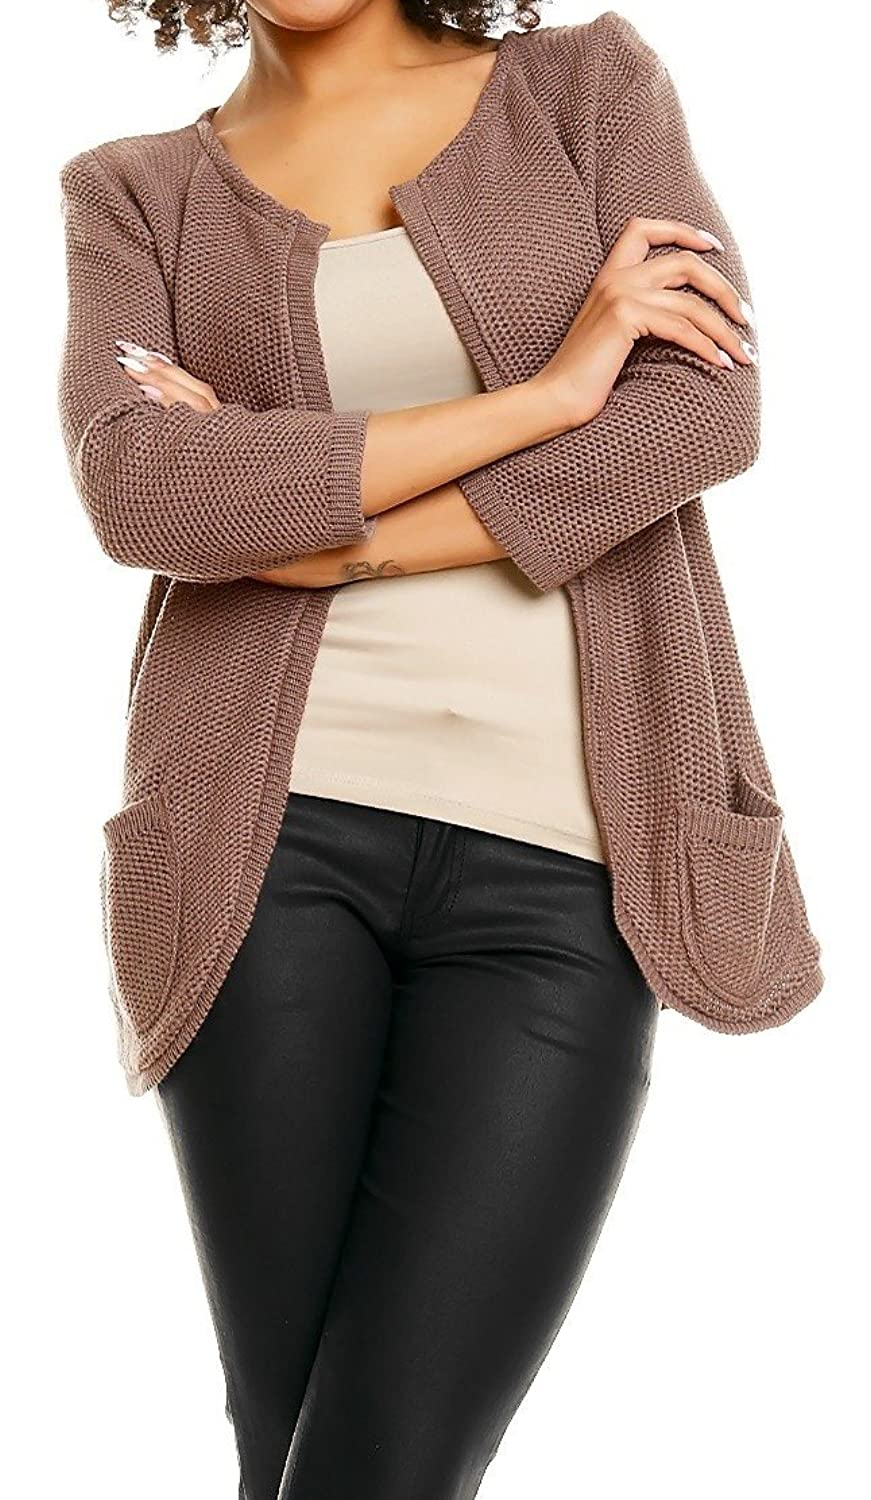 Zeta Ville - Womens Knitted Short Cardigan Cardi Pockets - Long Sleeves - 425z